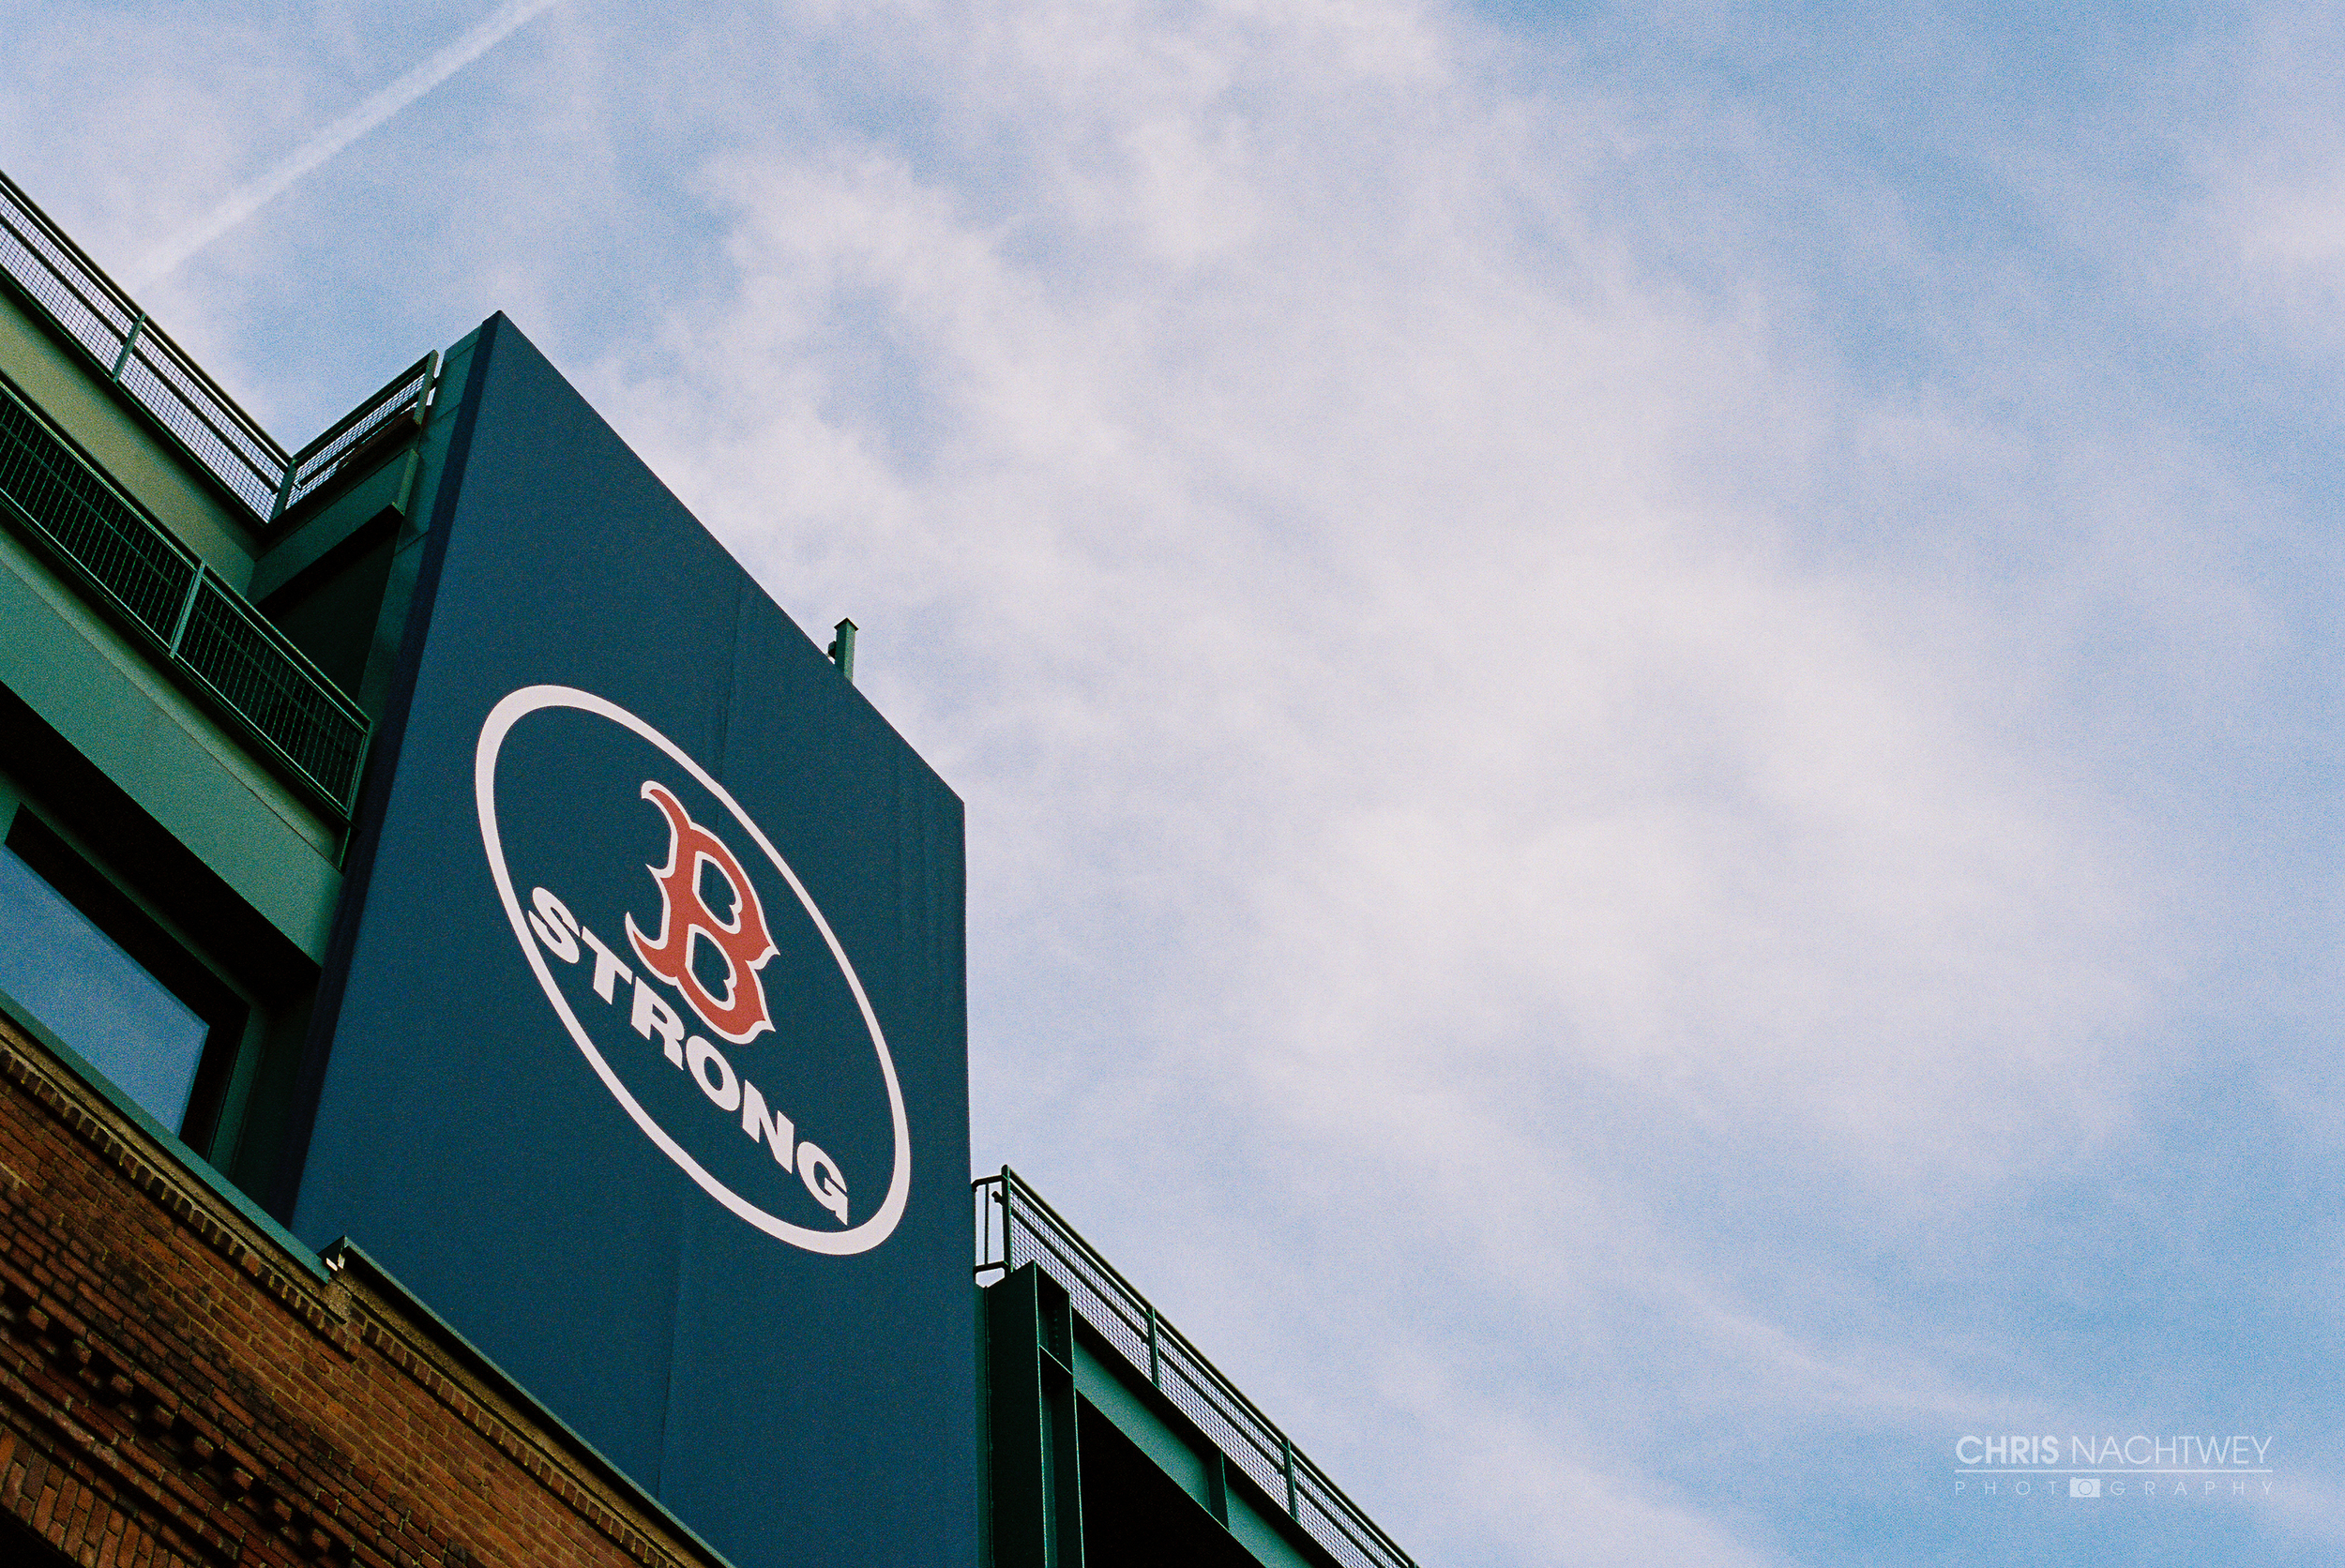 chris_nachtwey_connecticut_film_photographer_fenway_park-9.jpg